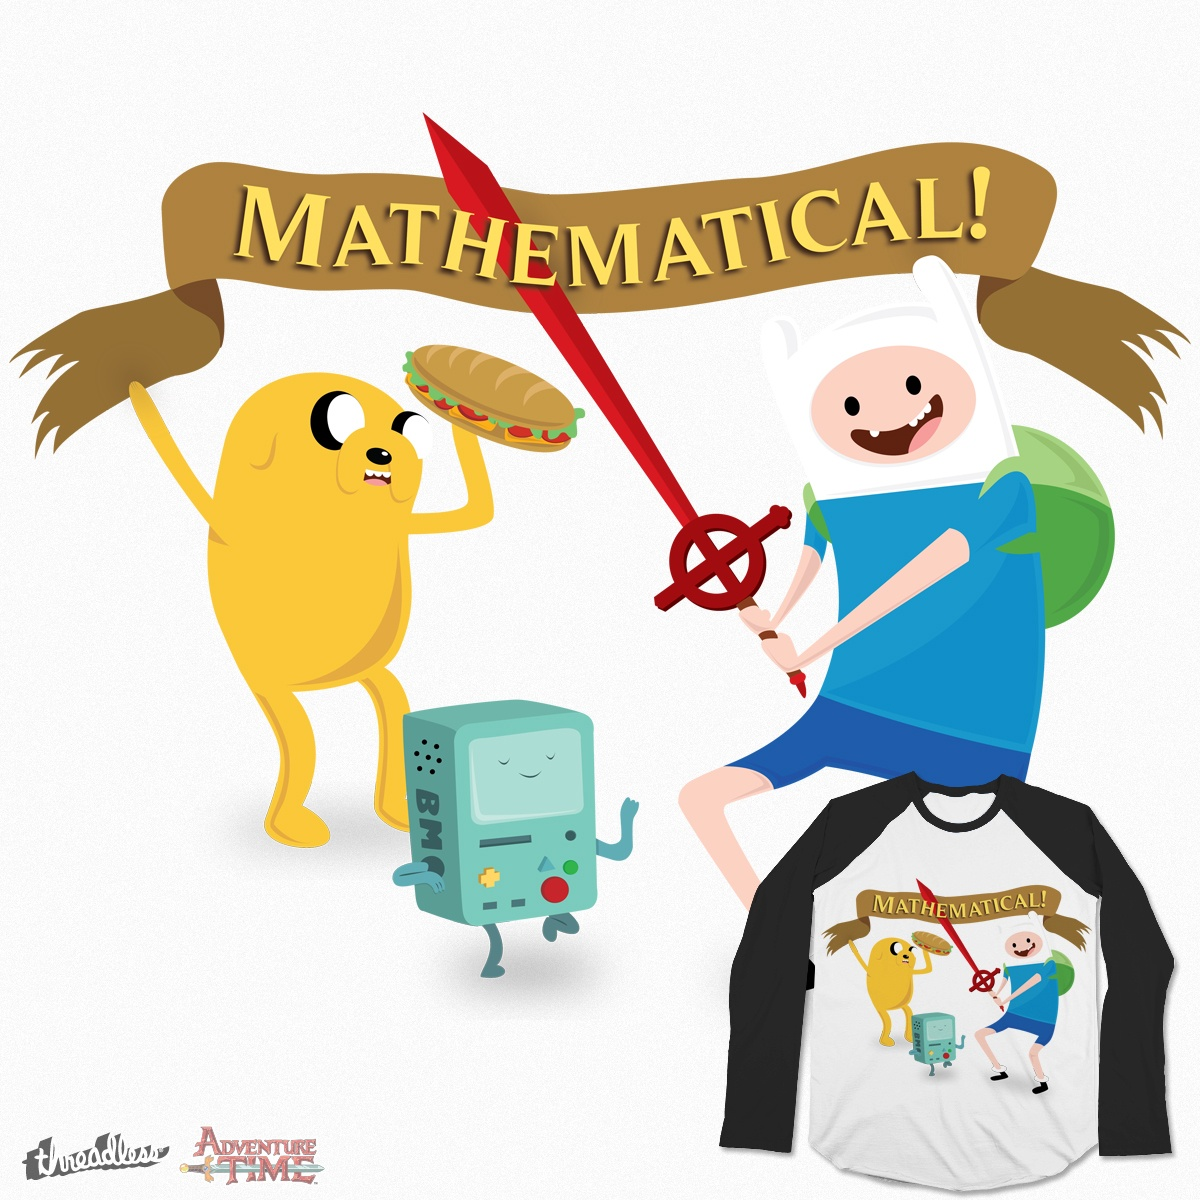 1200x1200 Score Mathematical Adventure Time! By S3ntrydesigns On Threadless